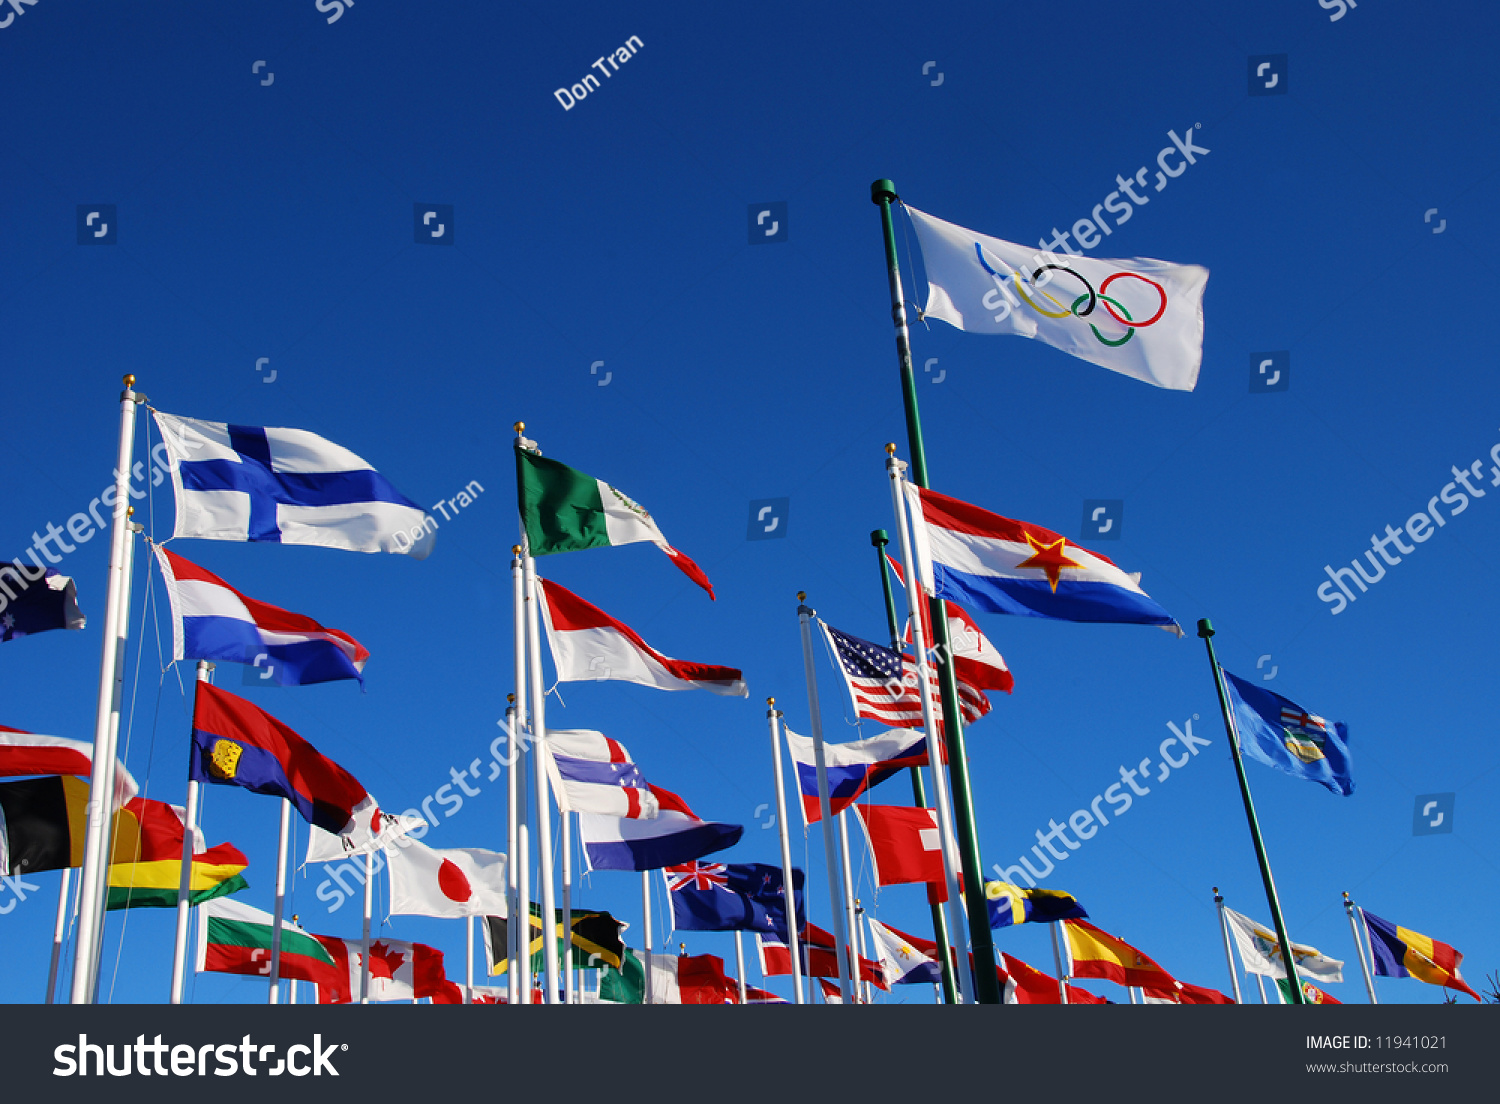 International Flags For Olympic Events On Blue Sky Calgary Park